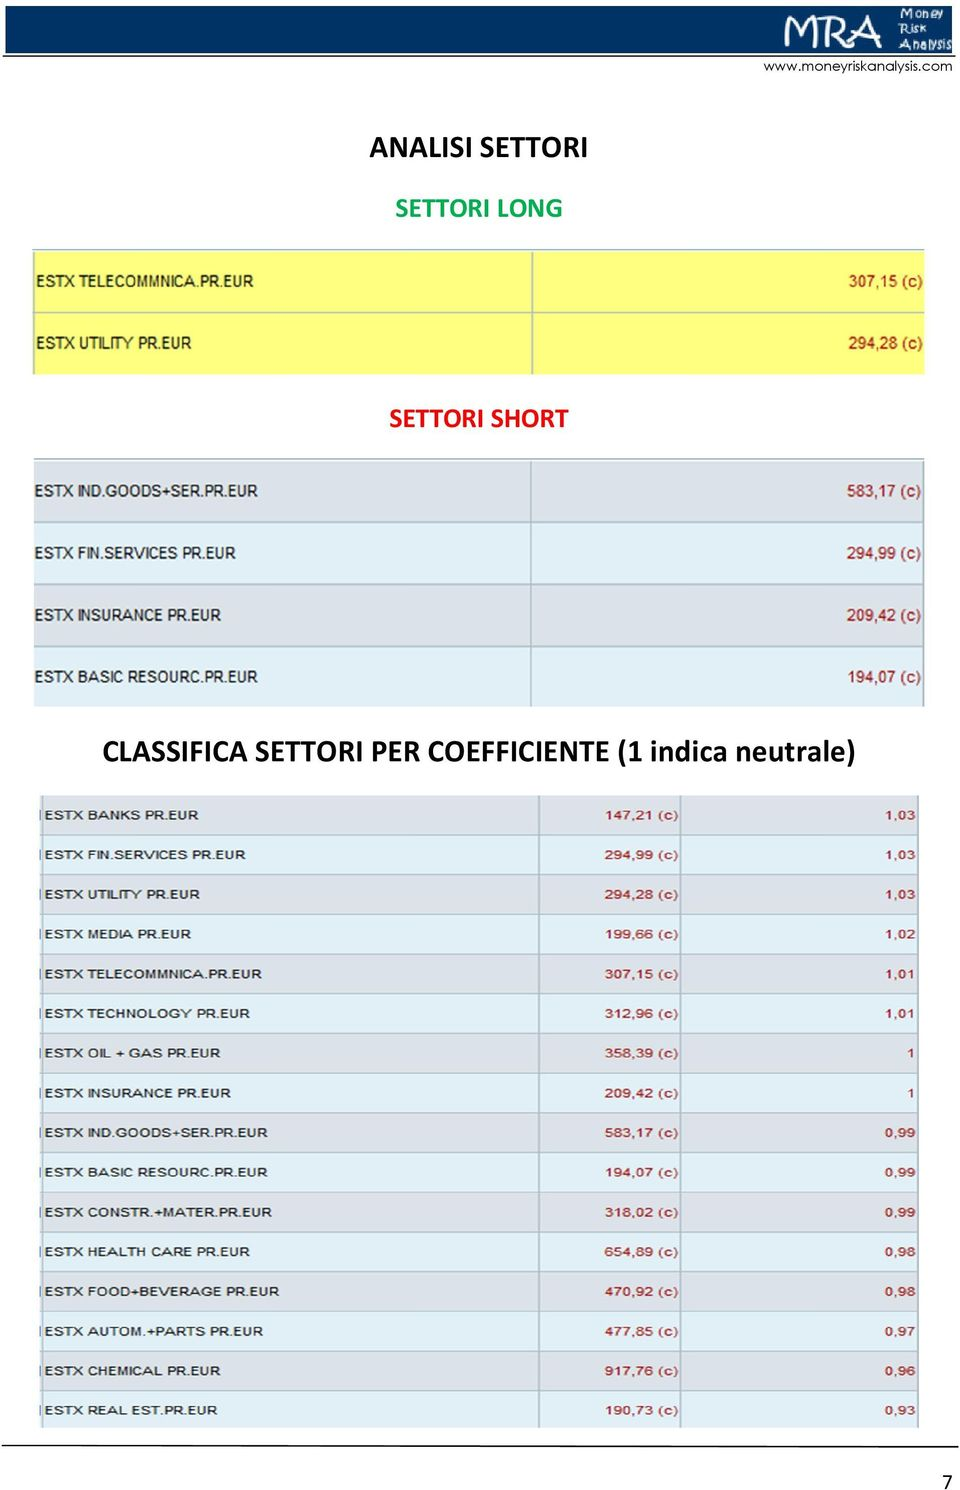 CLASSIFICA SETTORI PER